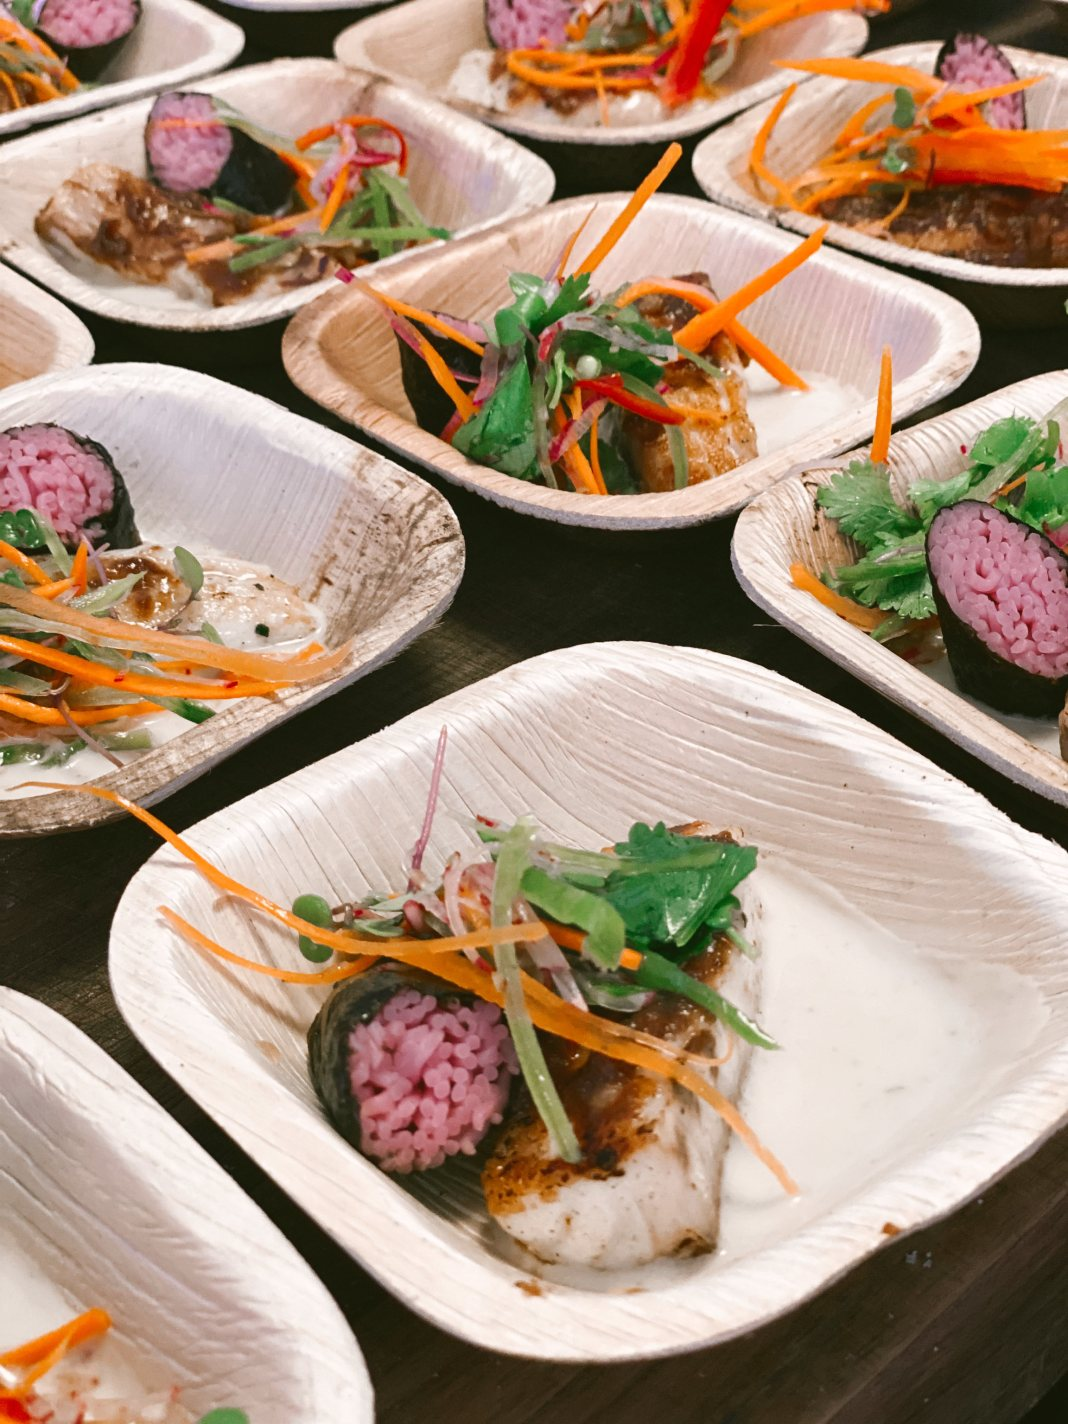 Hawaii Food and Wine Festival - HFWF19, HIFOODANDWINE, Lifes a beach, Ko Olina, Aulani, Disney Aulani, Four Seasons Resort Ko Olina, Hawaii Food and Wine Festival 2019 | Wanderlustyle.com